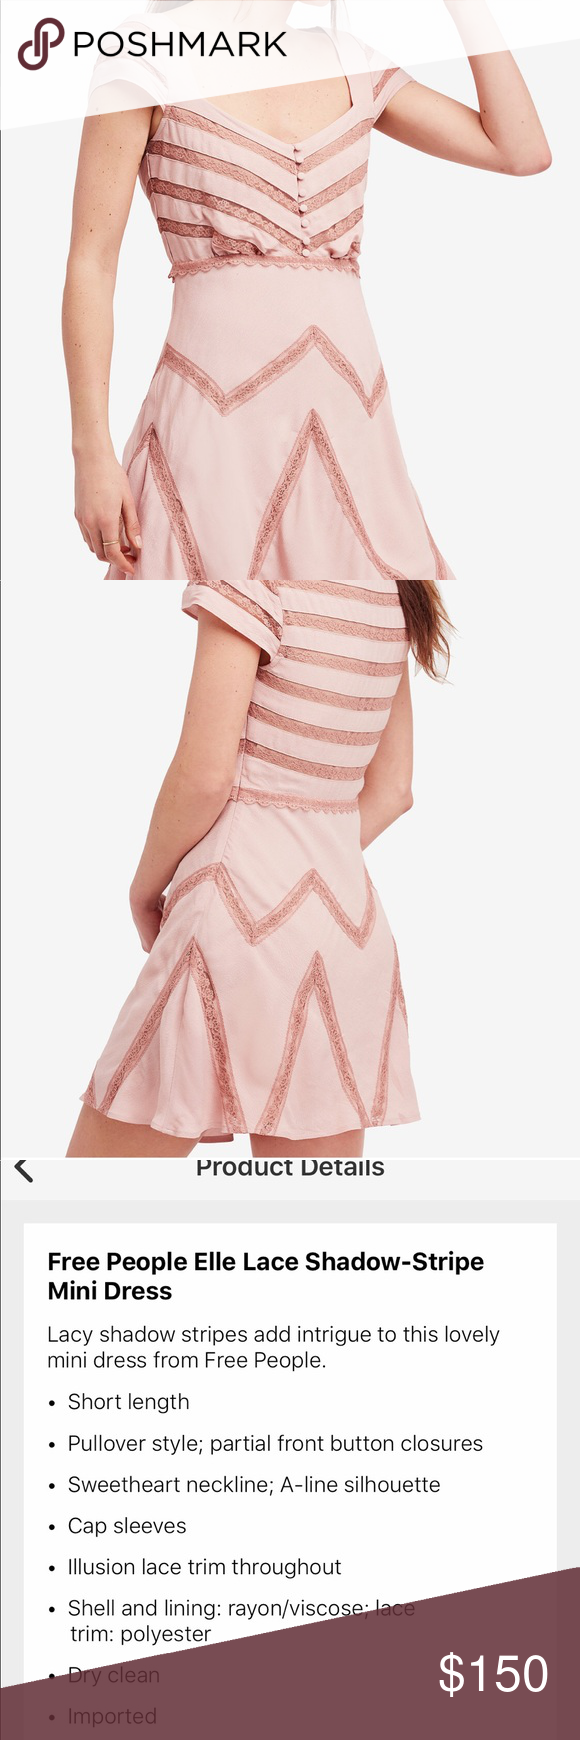 Free People Womens Elle A-Line Mini Dress